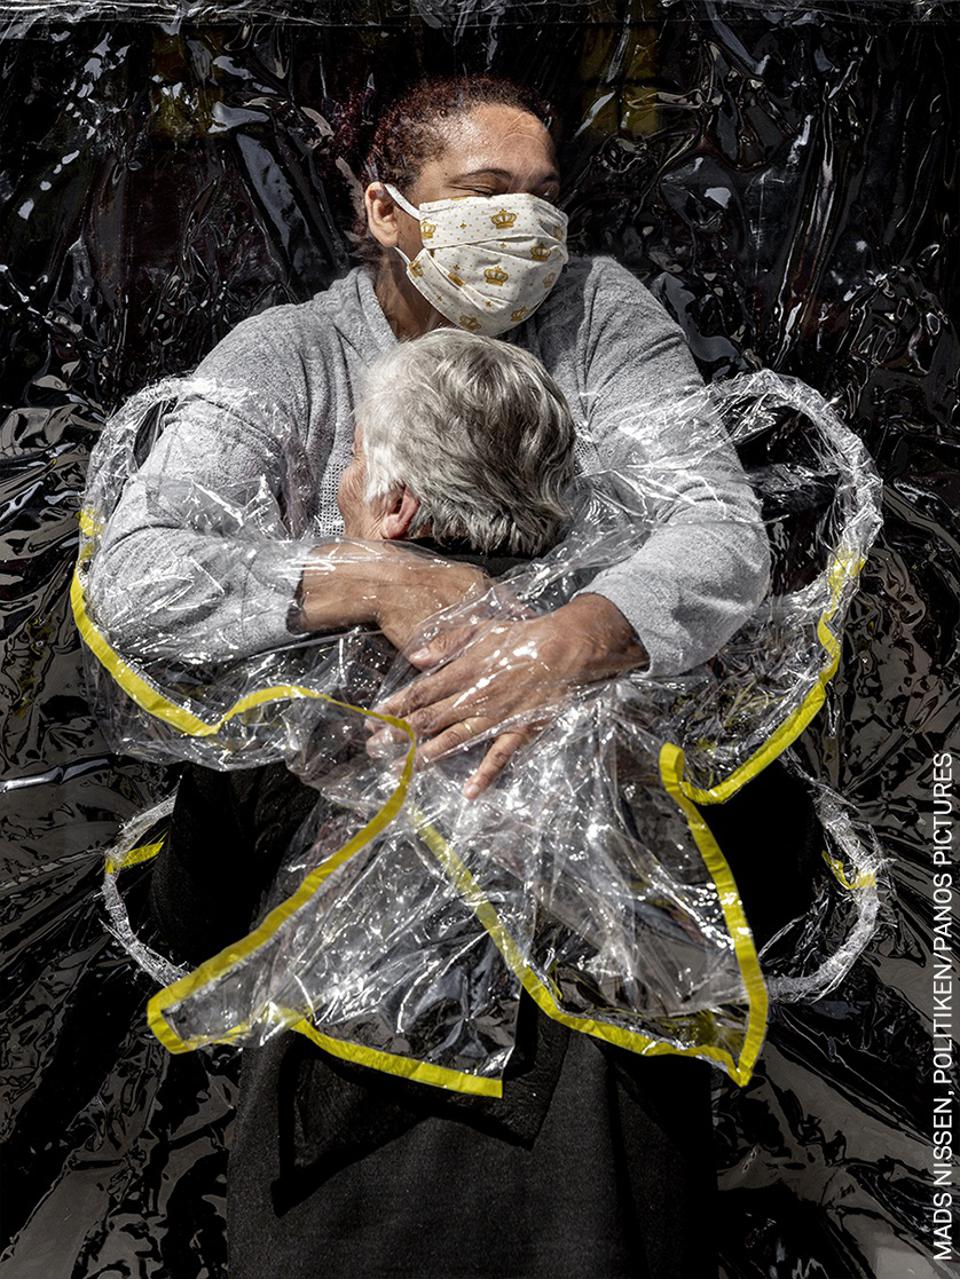 World Press Photo contest: An old lady in a nursing home is embraced by a nurse.